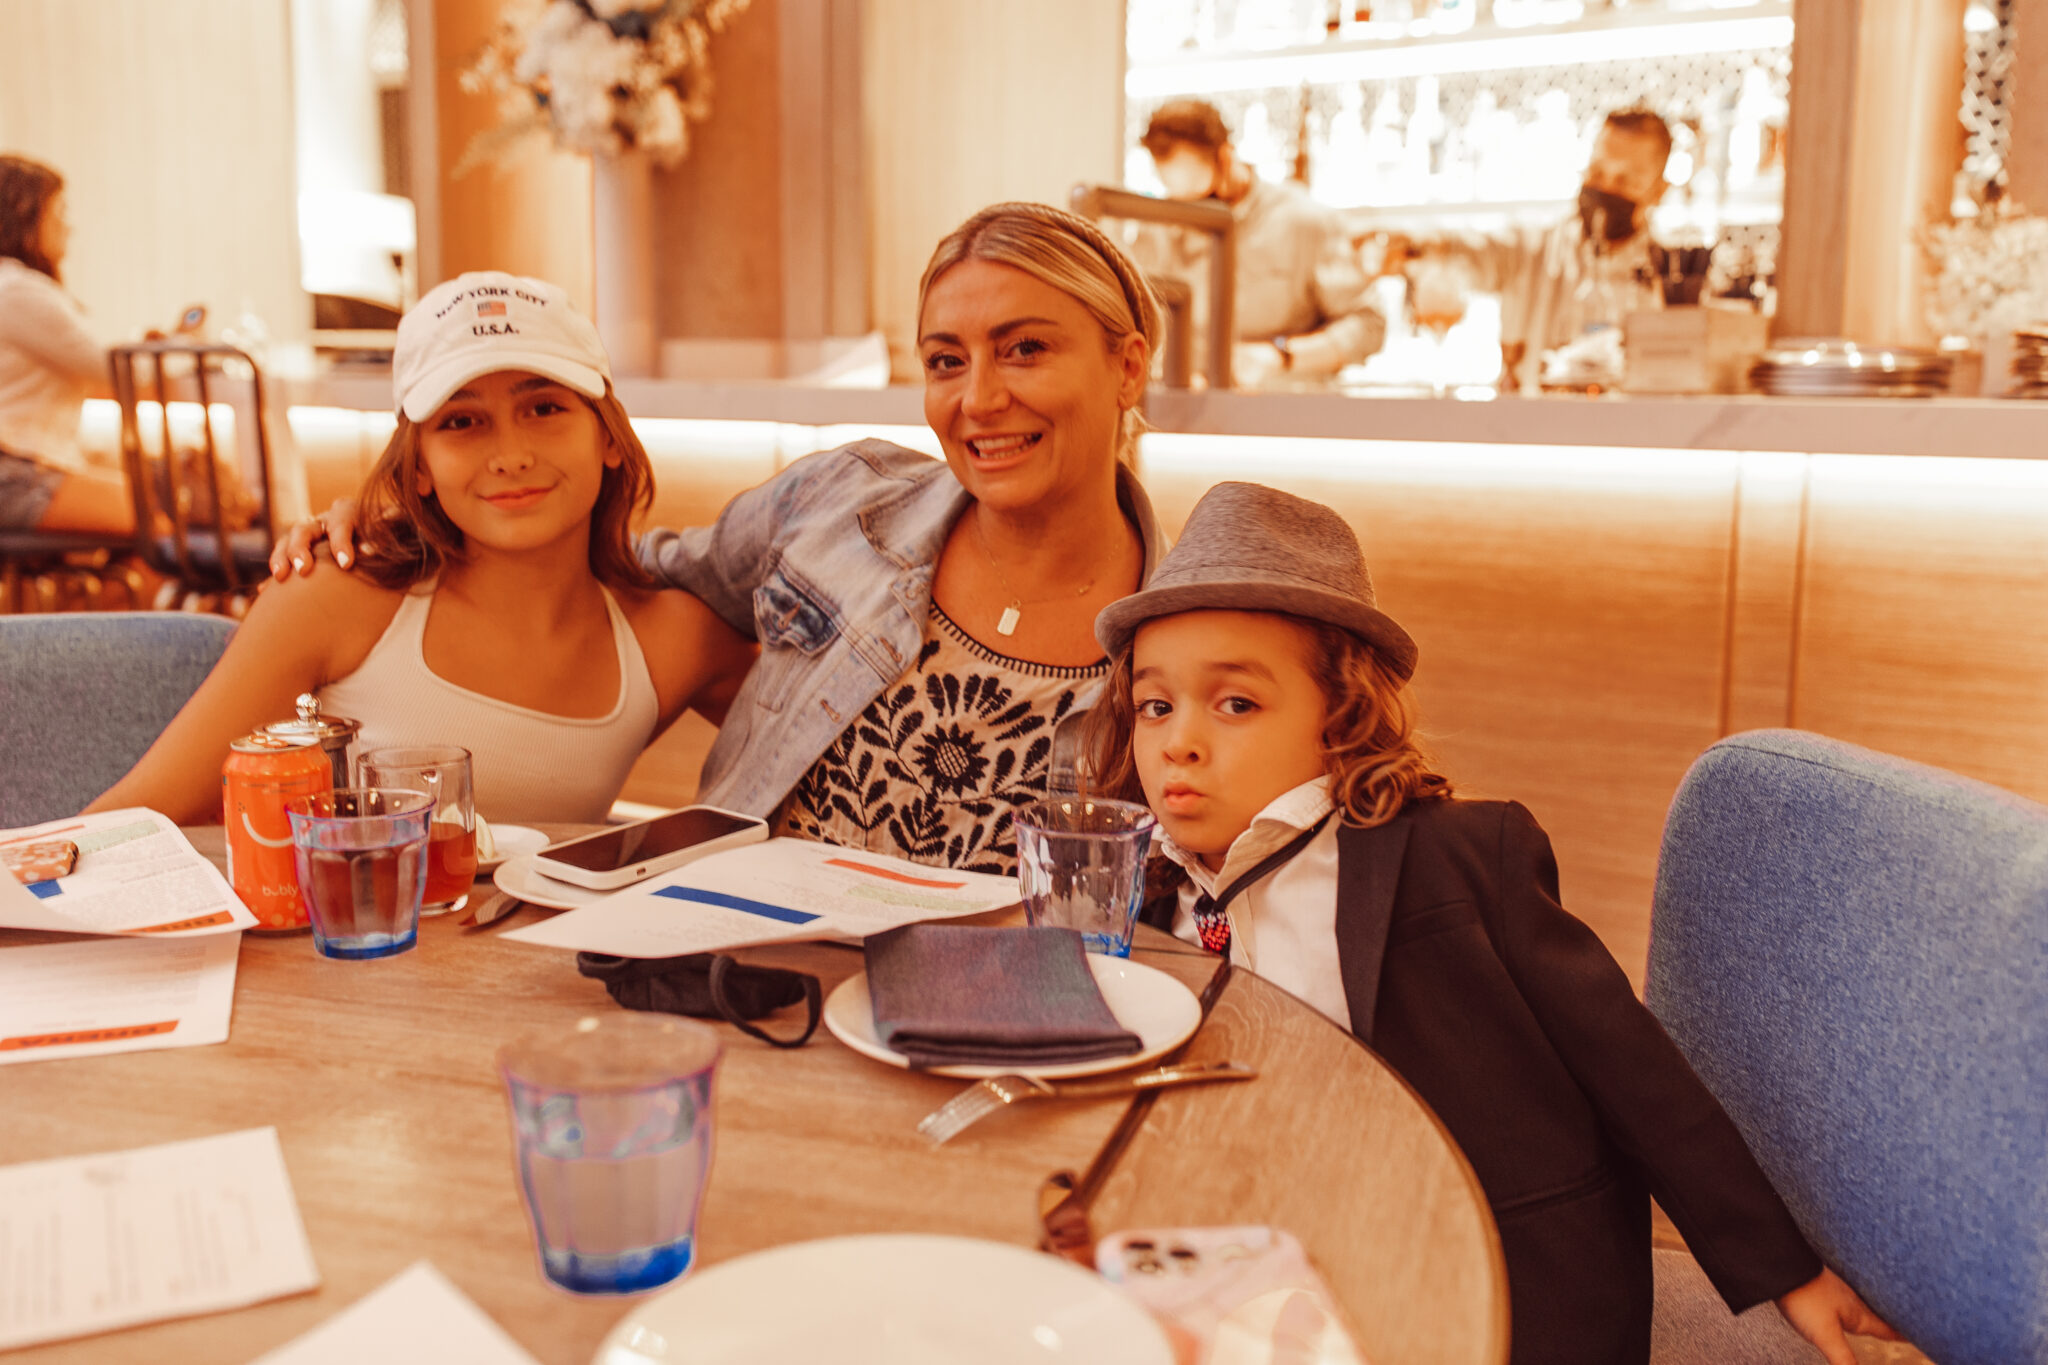 mom with kids at restaurant